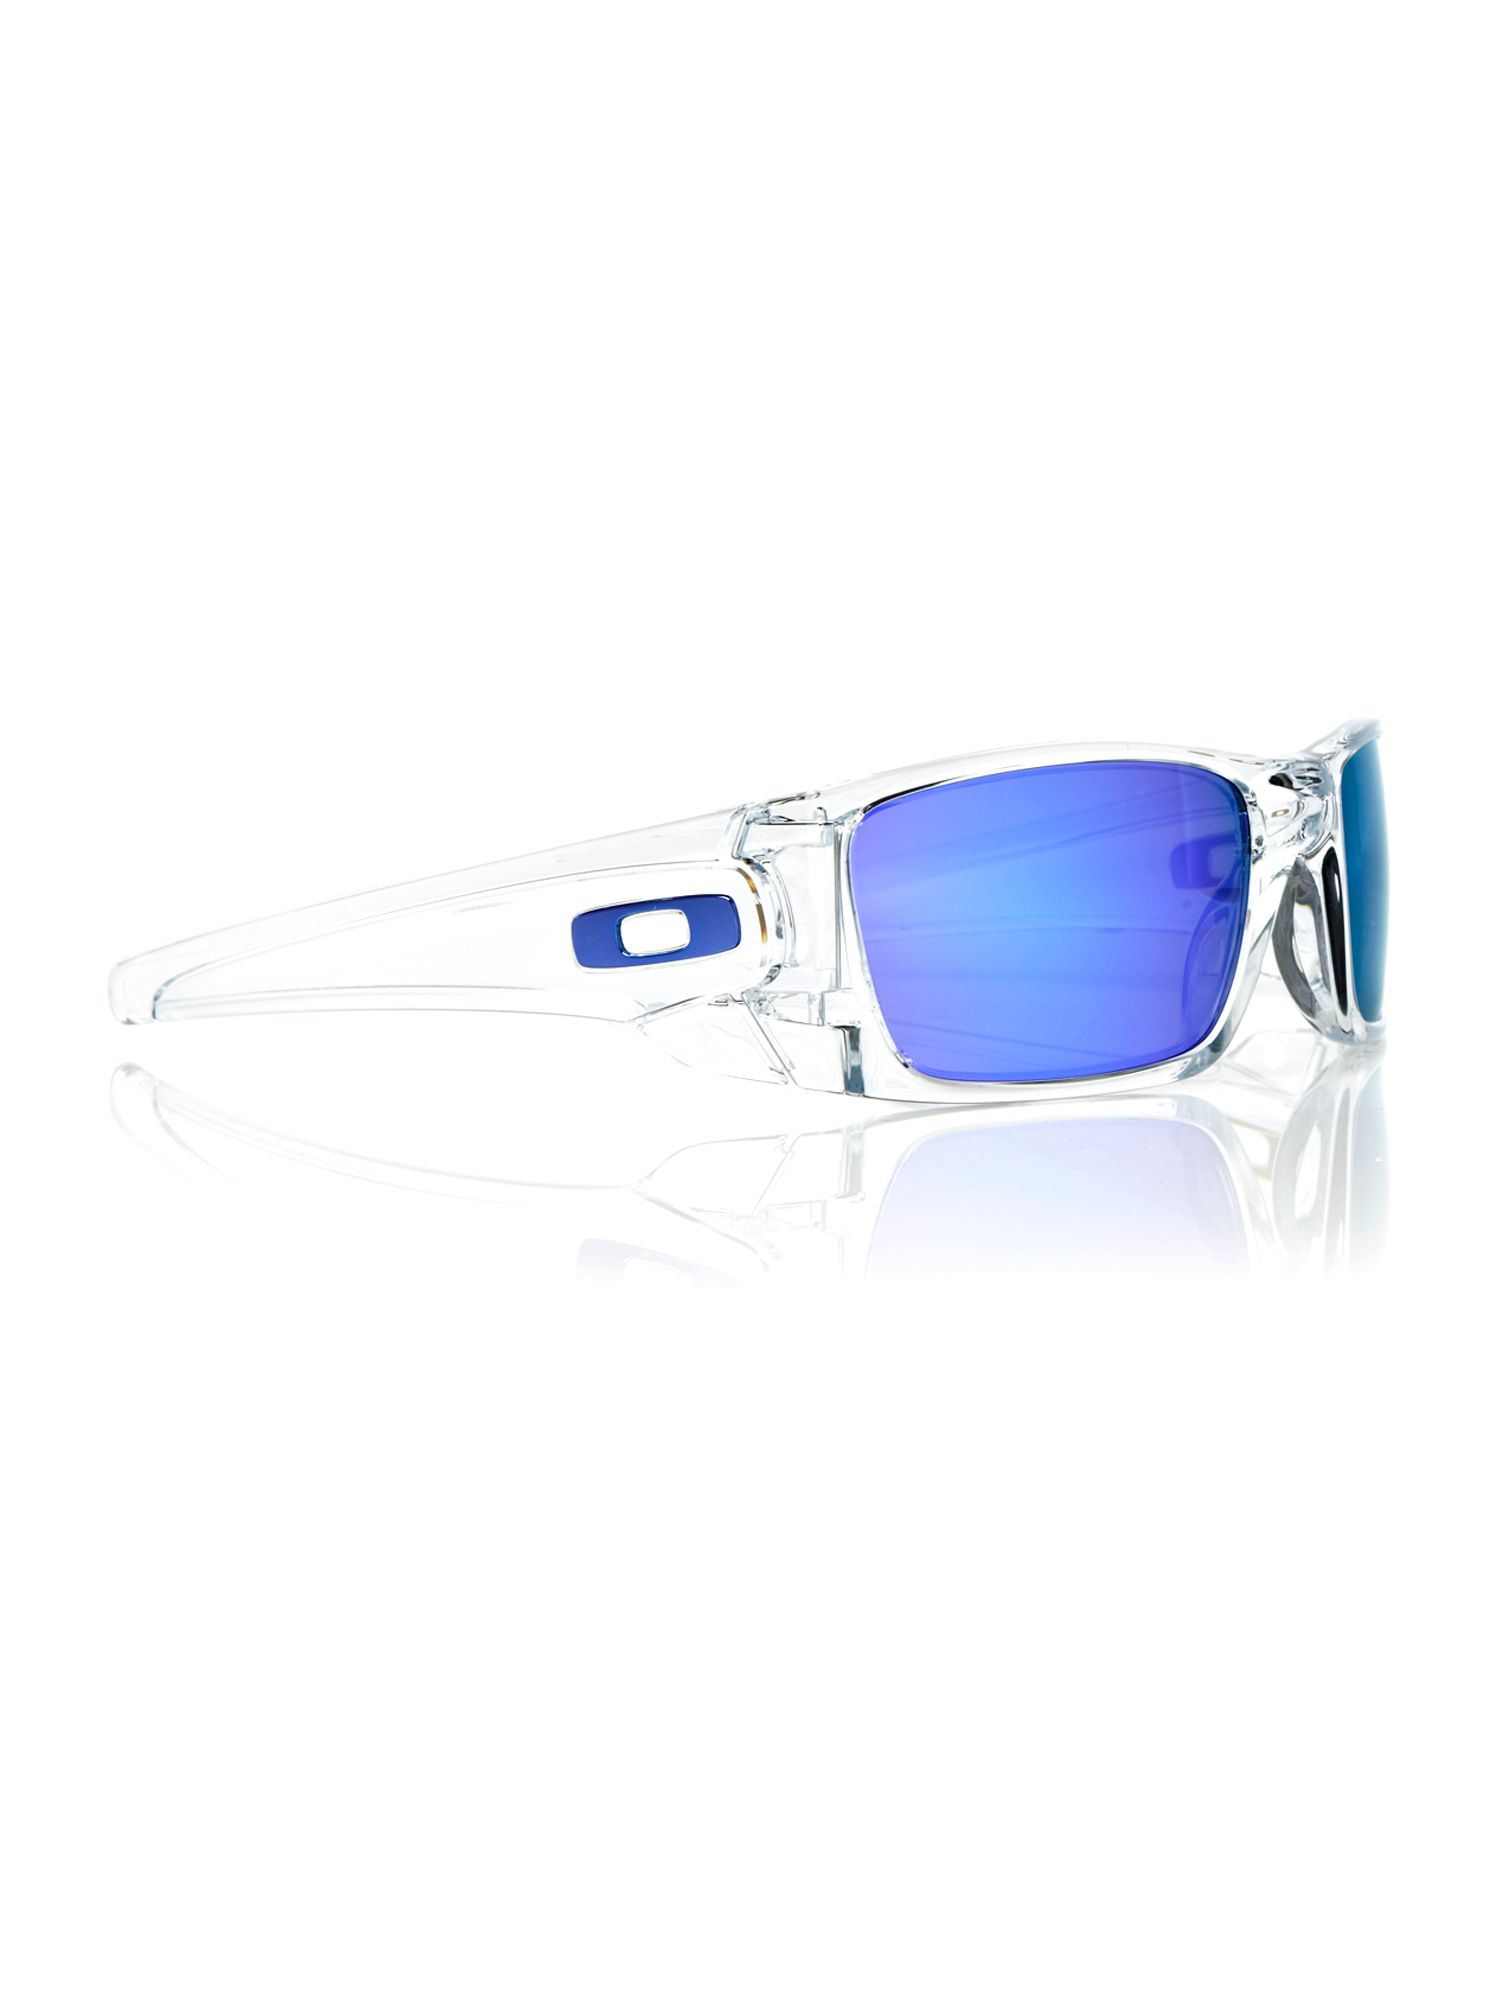 Mens OO9096 Fuel Cell Sunglasses